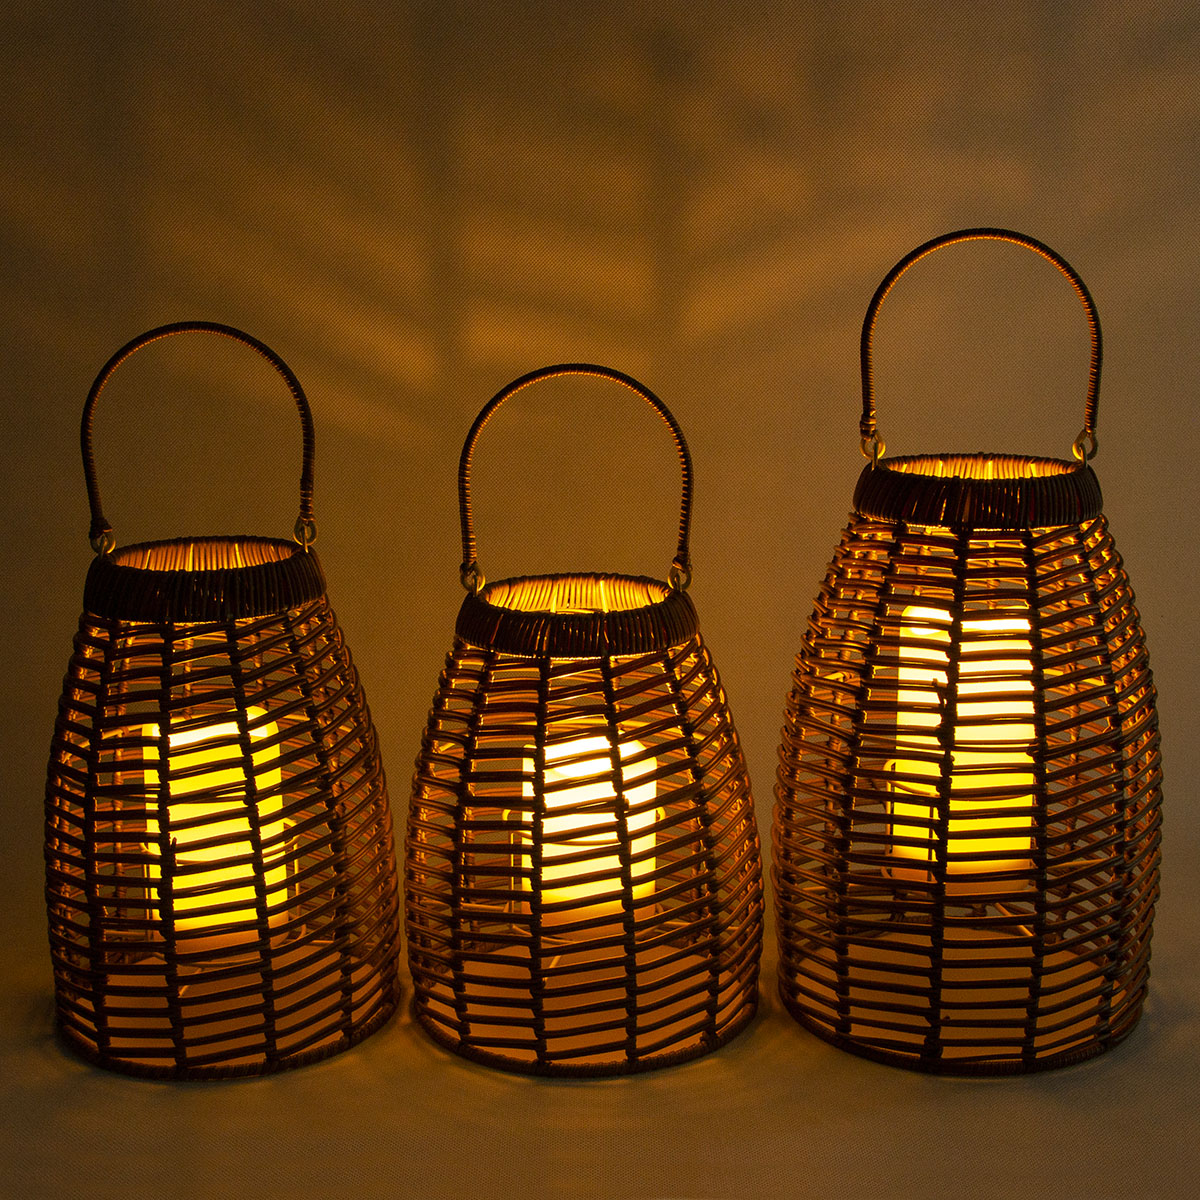 Hanging Solar Rattan Lantern Table Decor for Outdoors Featured Image